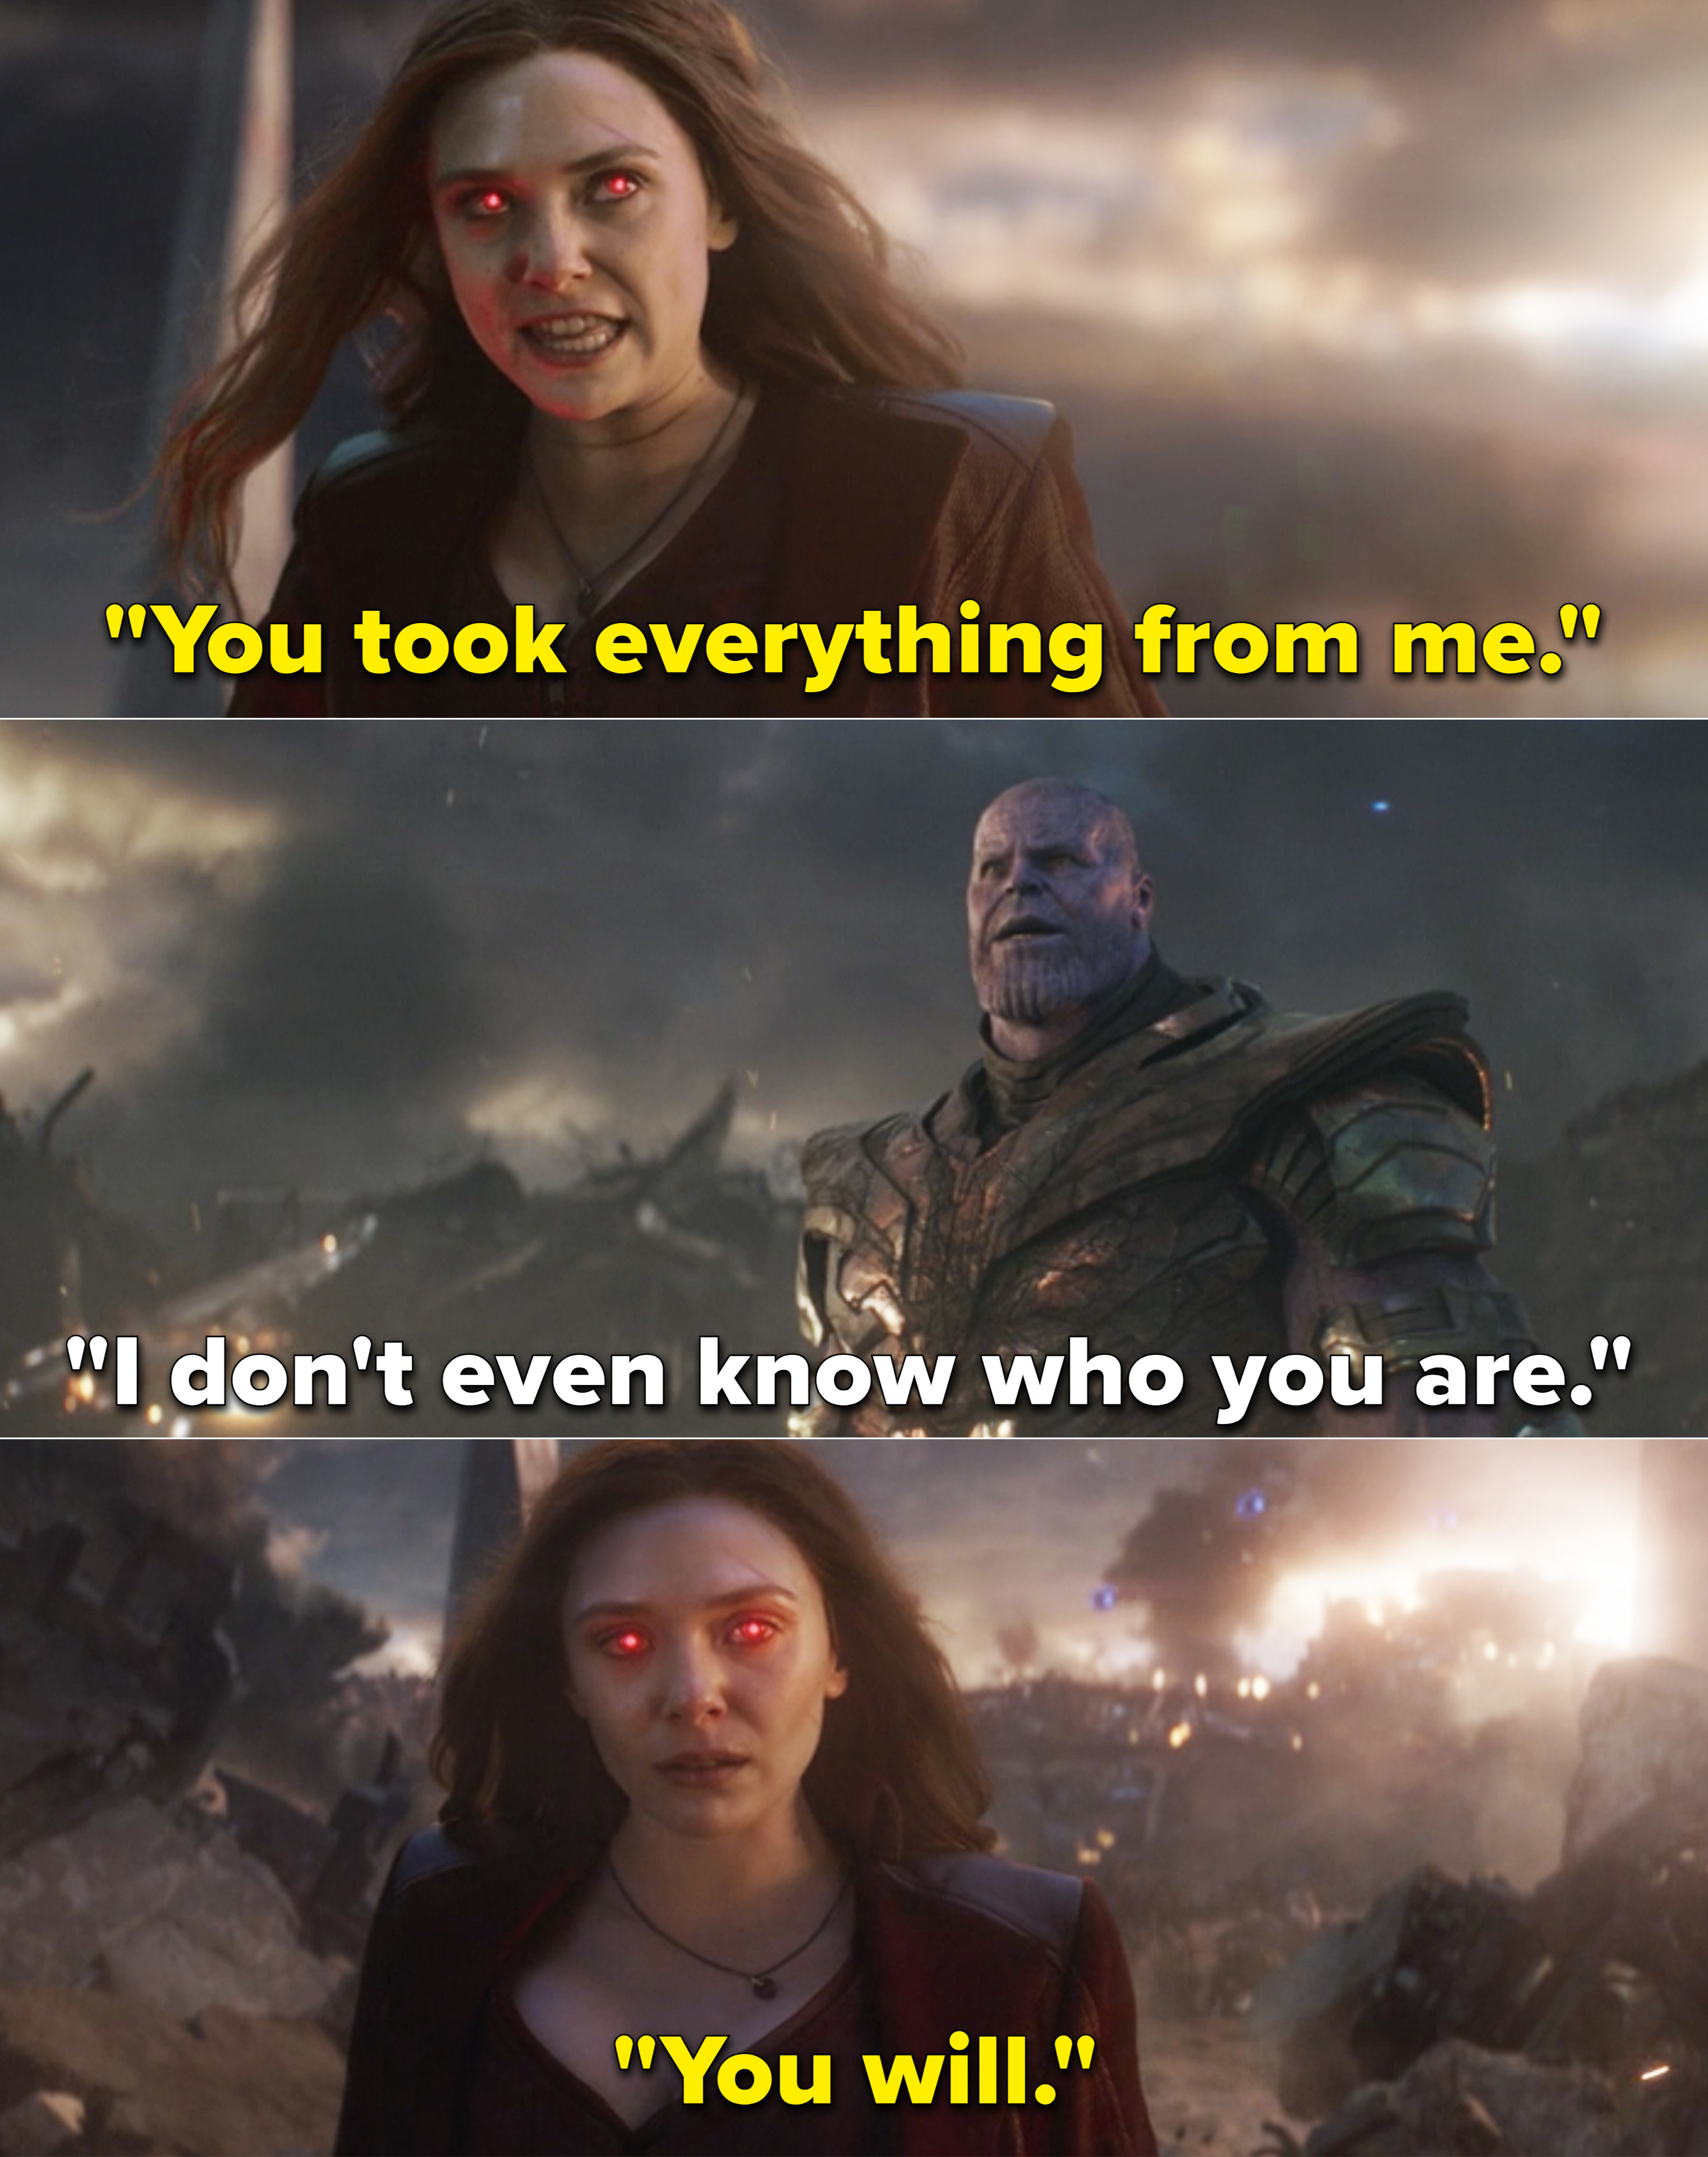 """Wanda telling Thanos, """"You took everything from me"""" and Thanos saying he doesn't even know who she is"""